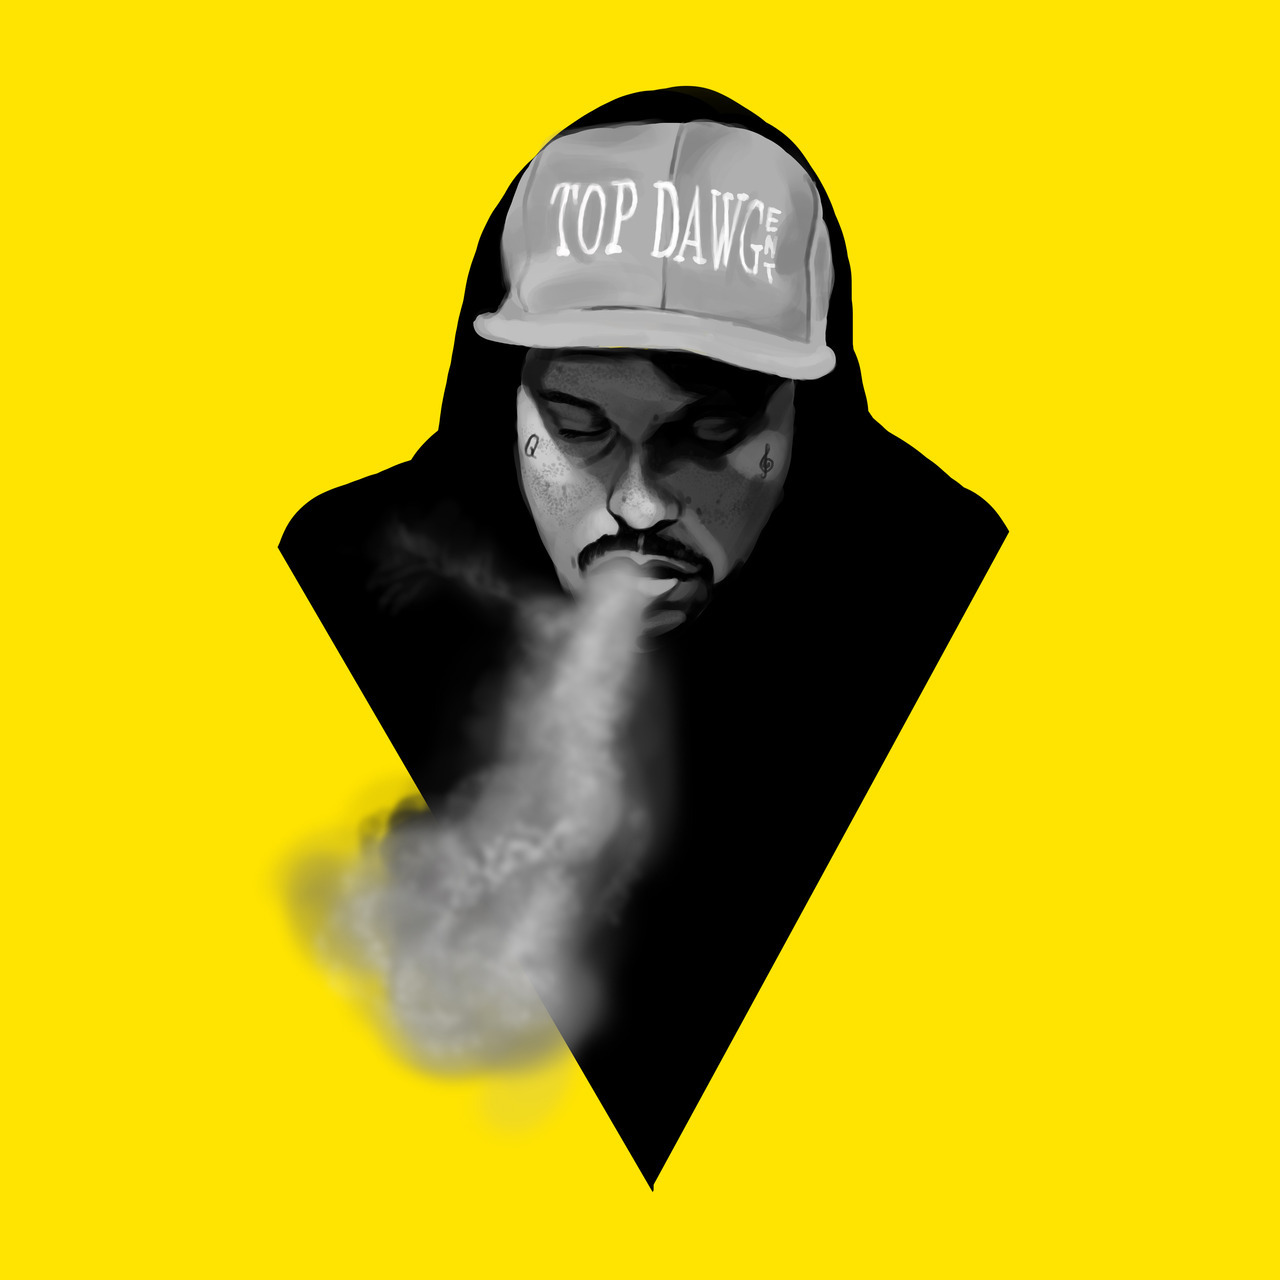 ScHoolboy Q digital painting. Adobe Photoshop. 1hr. Wacom tablet.